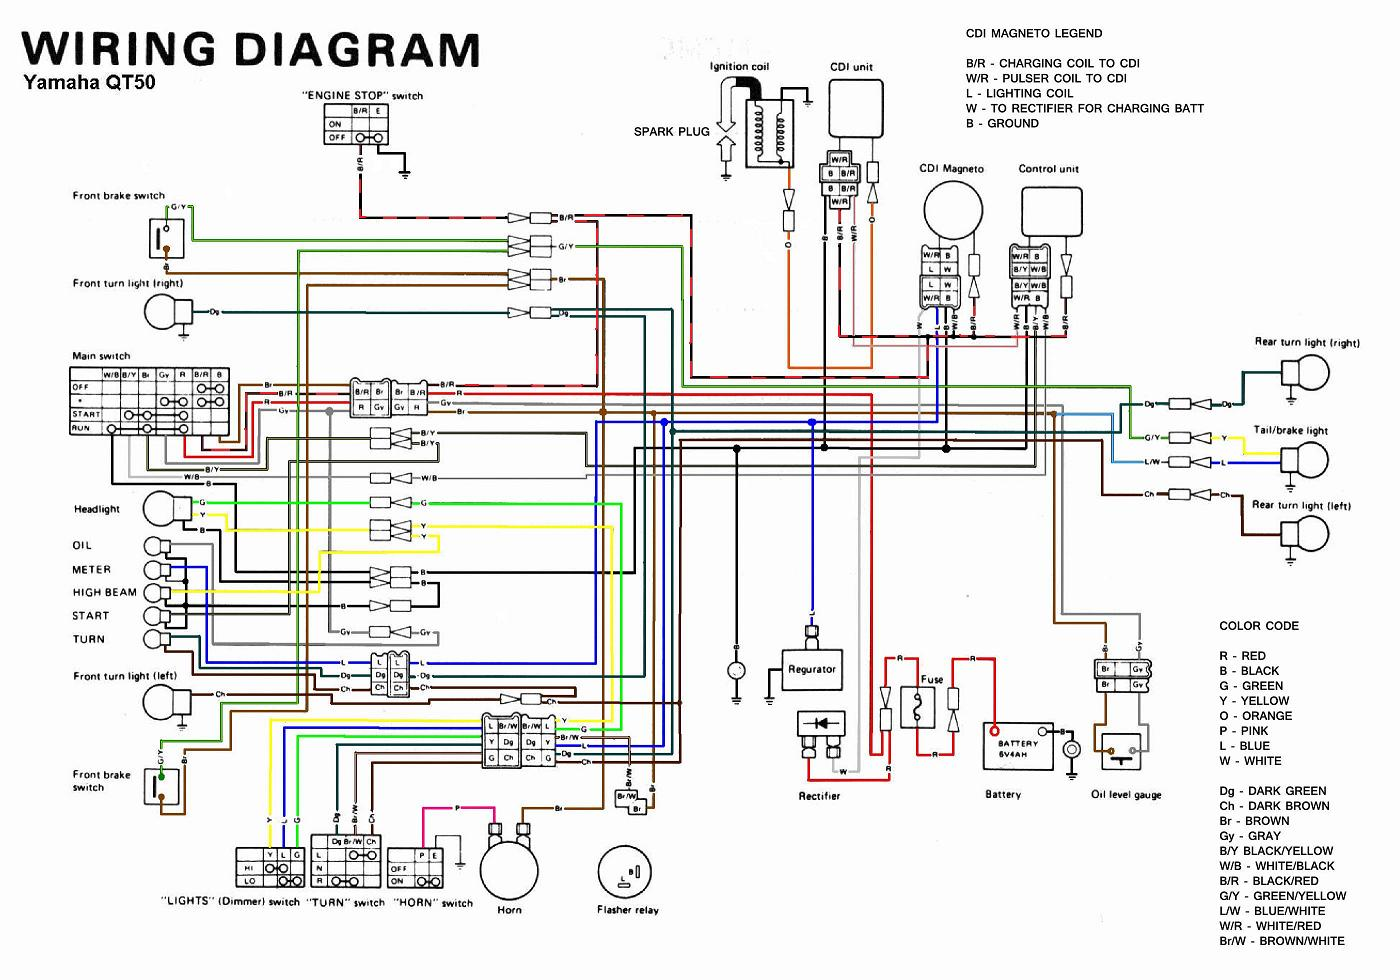 Yamaha QT50 Wiring Diagram yamaha qt50 wiring diagram yamaha qt50 luvin and other nopeds yamaha ct175 wiring diagram at eliteediting.co